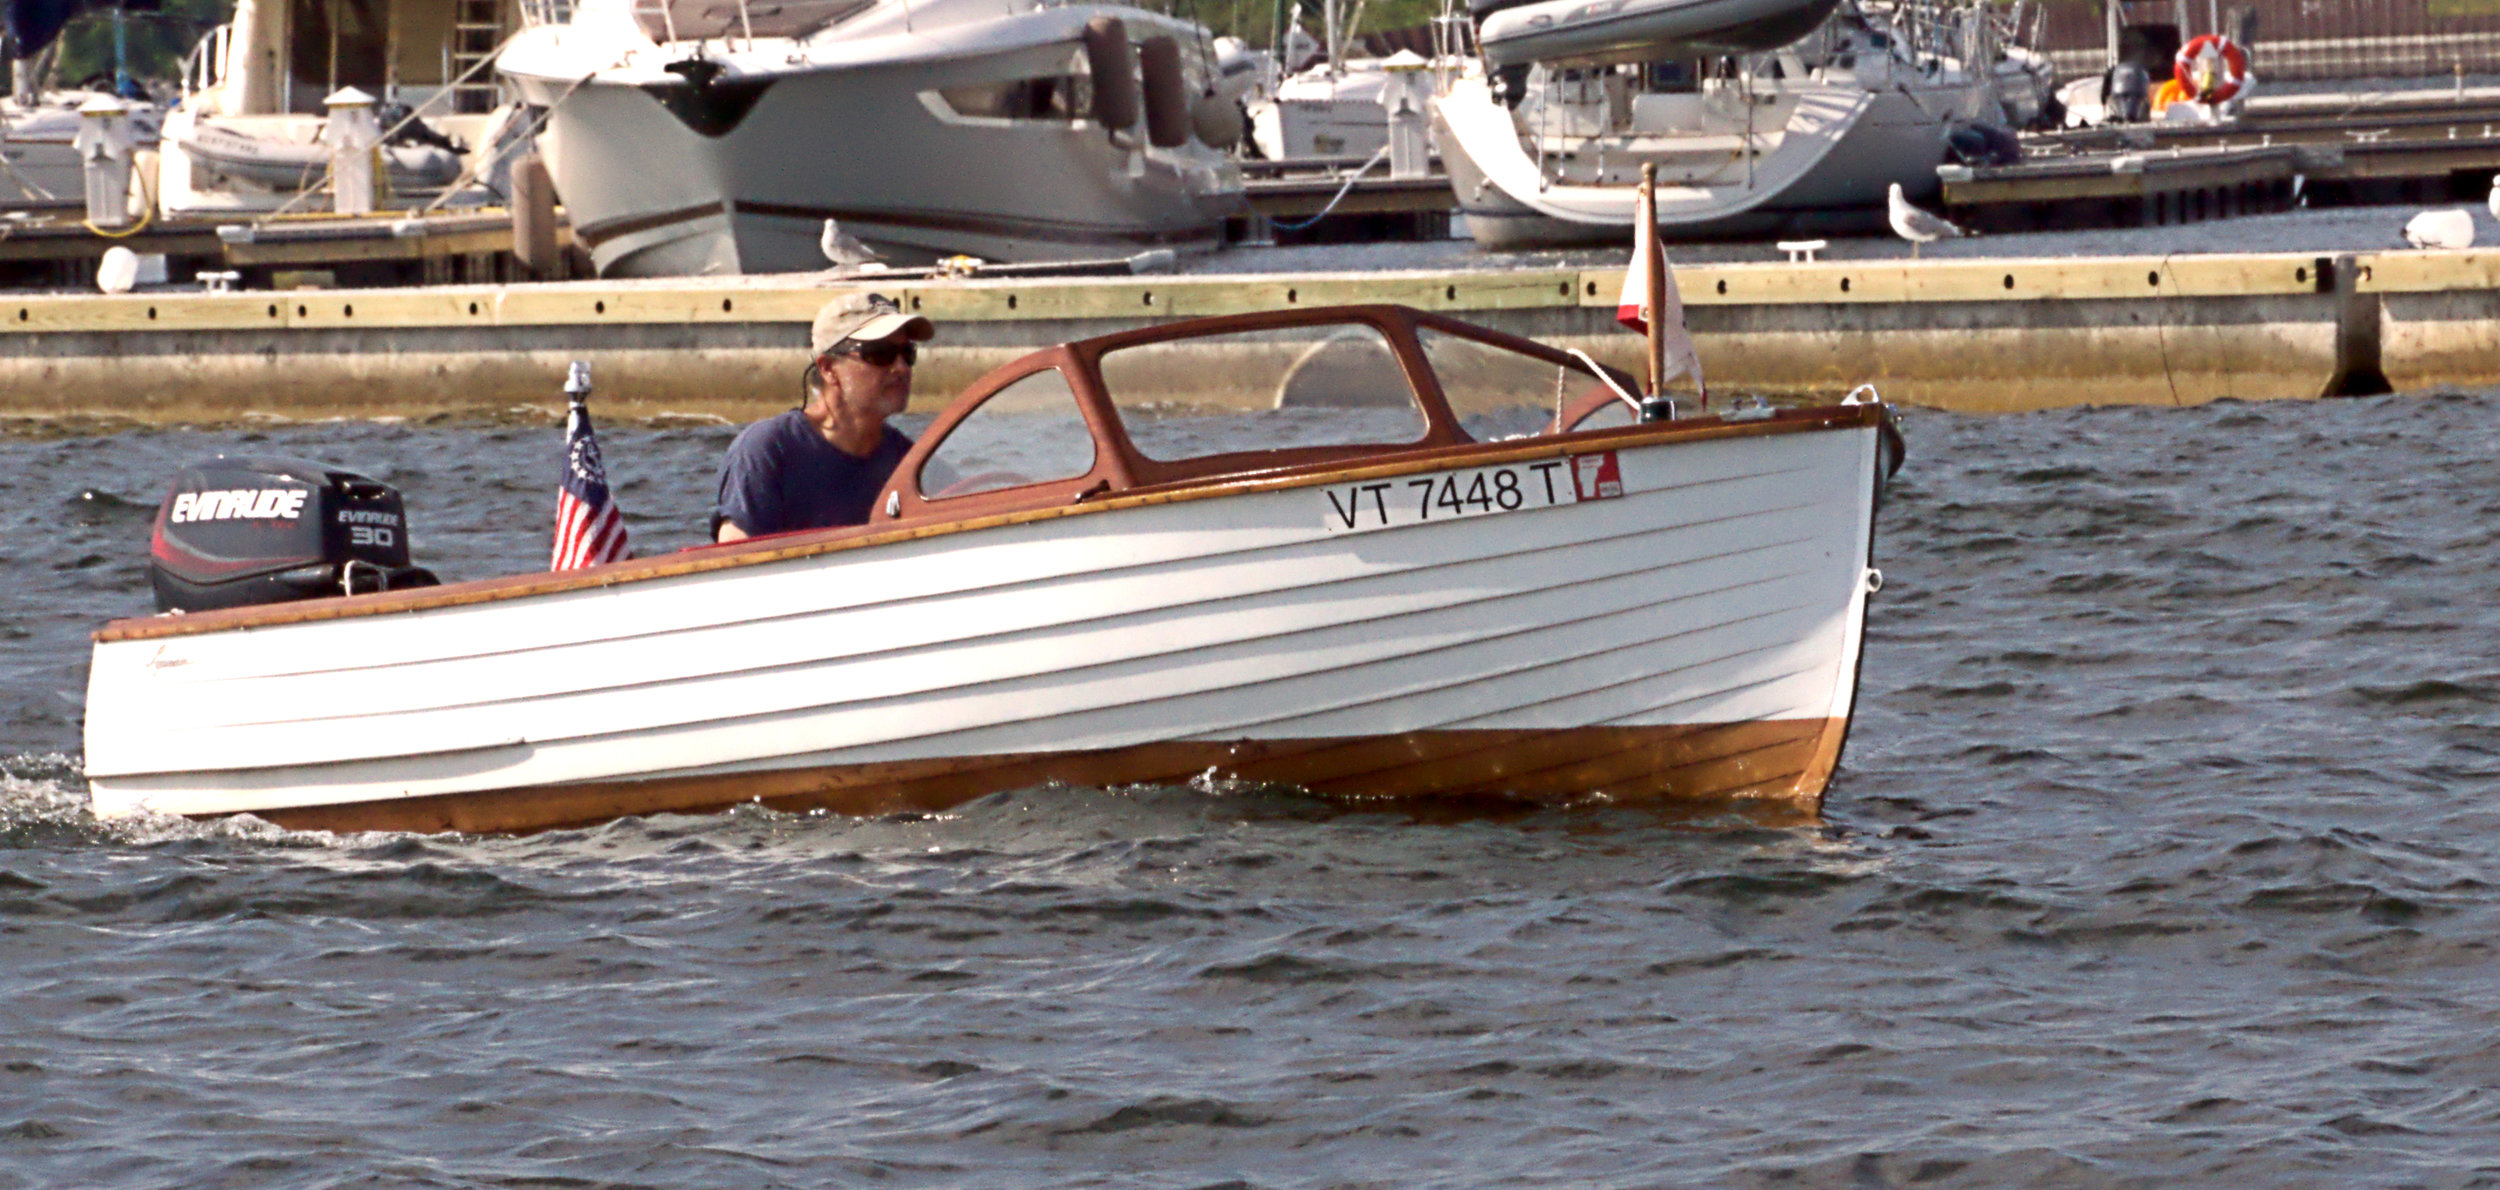 Doug Bell piloting Aqua Baby owned by Steve and Betsy Pond in the parade. Photo by John Dupee